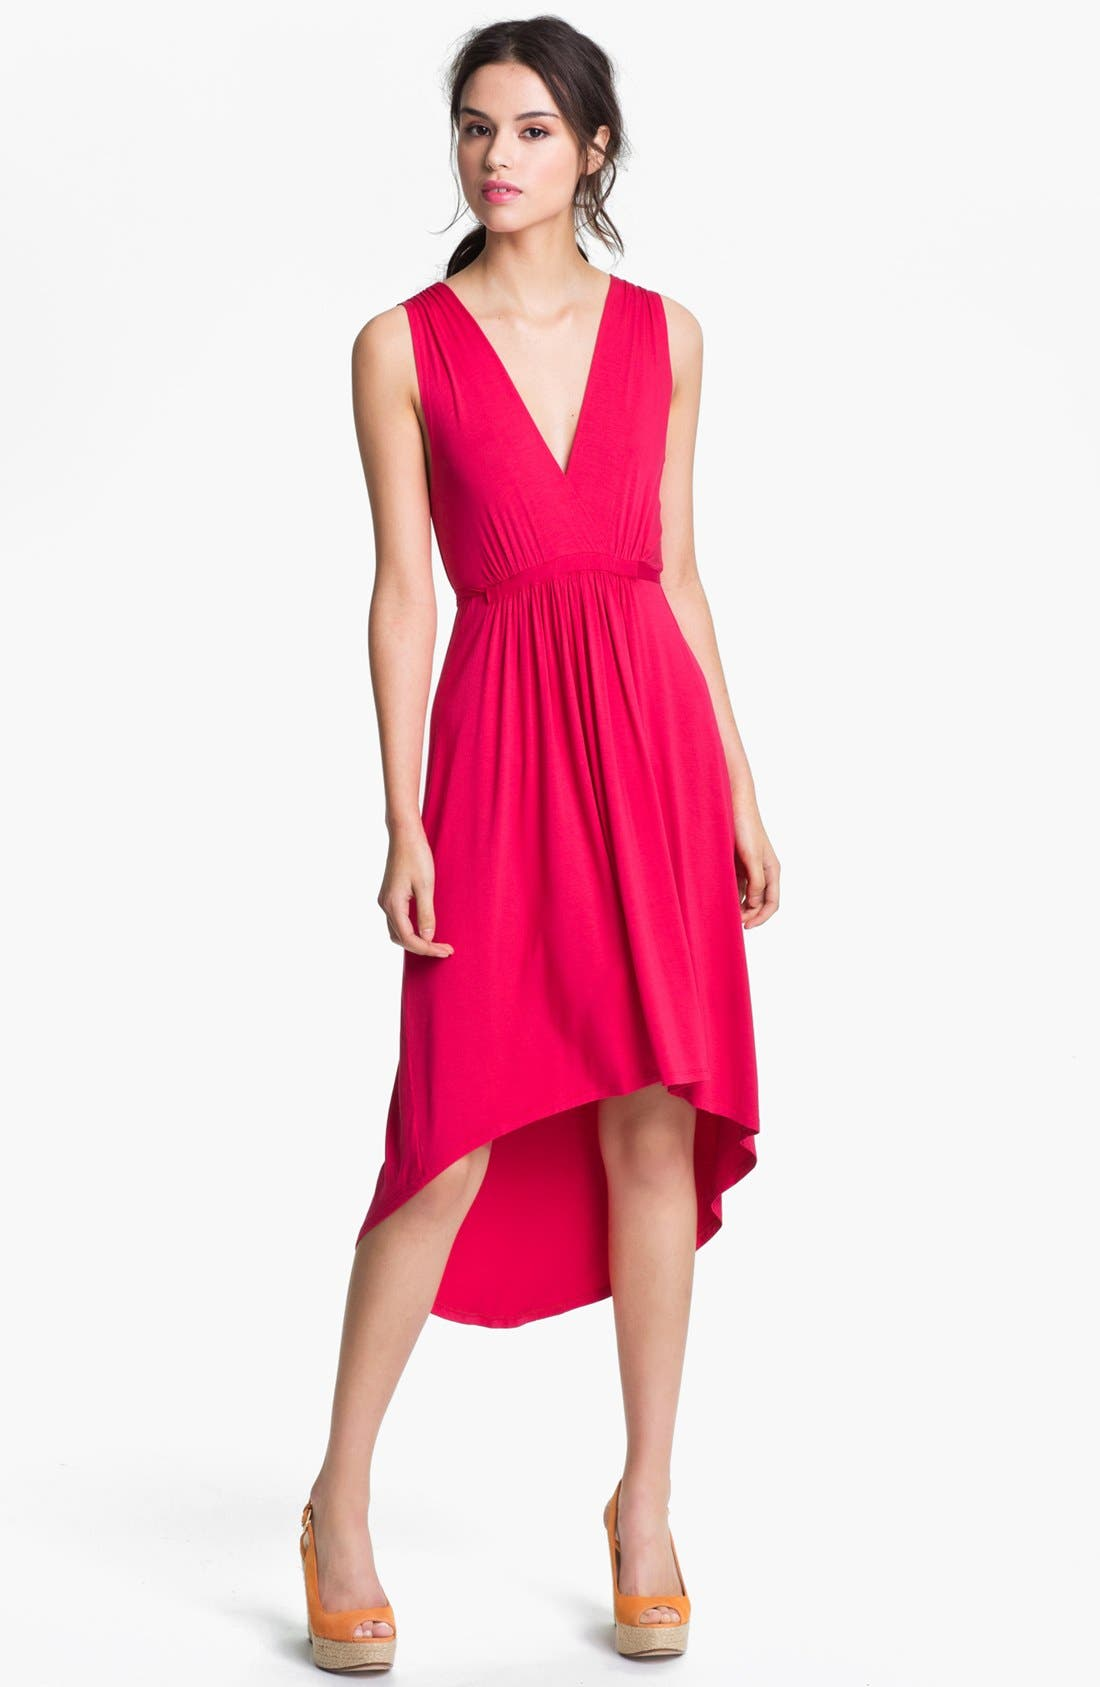 Alternate Image 1 Selected - Felicity & Coco Pleated High/Low Dress (Petite) (Nordstrom Exclusive)